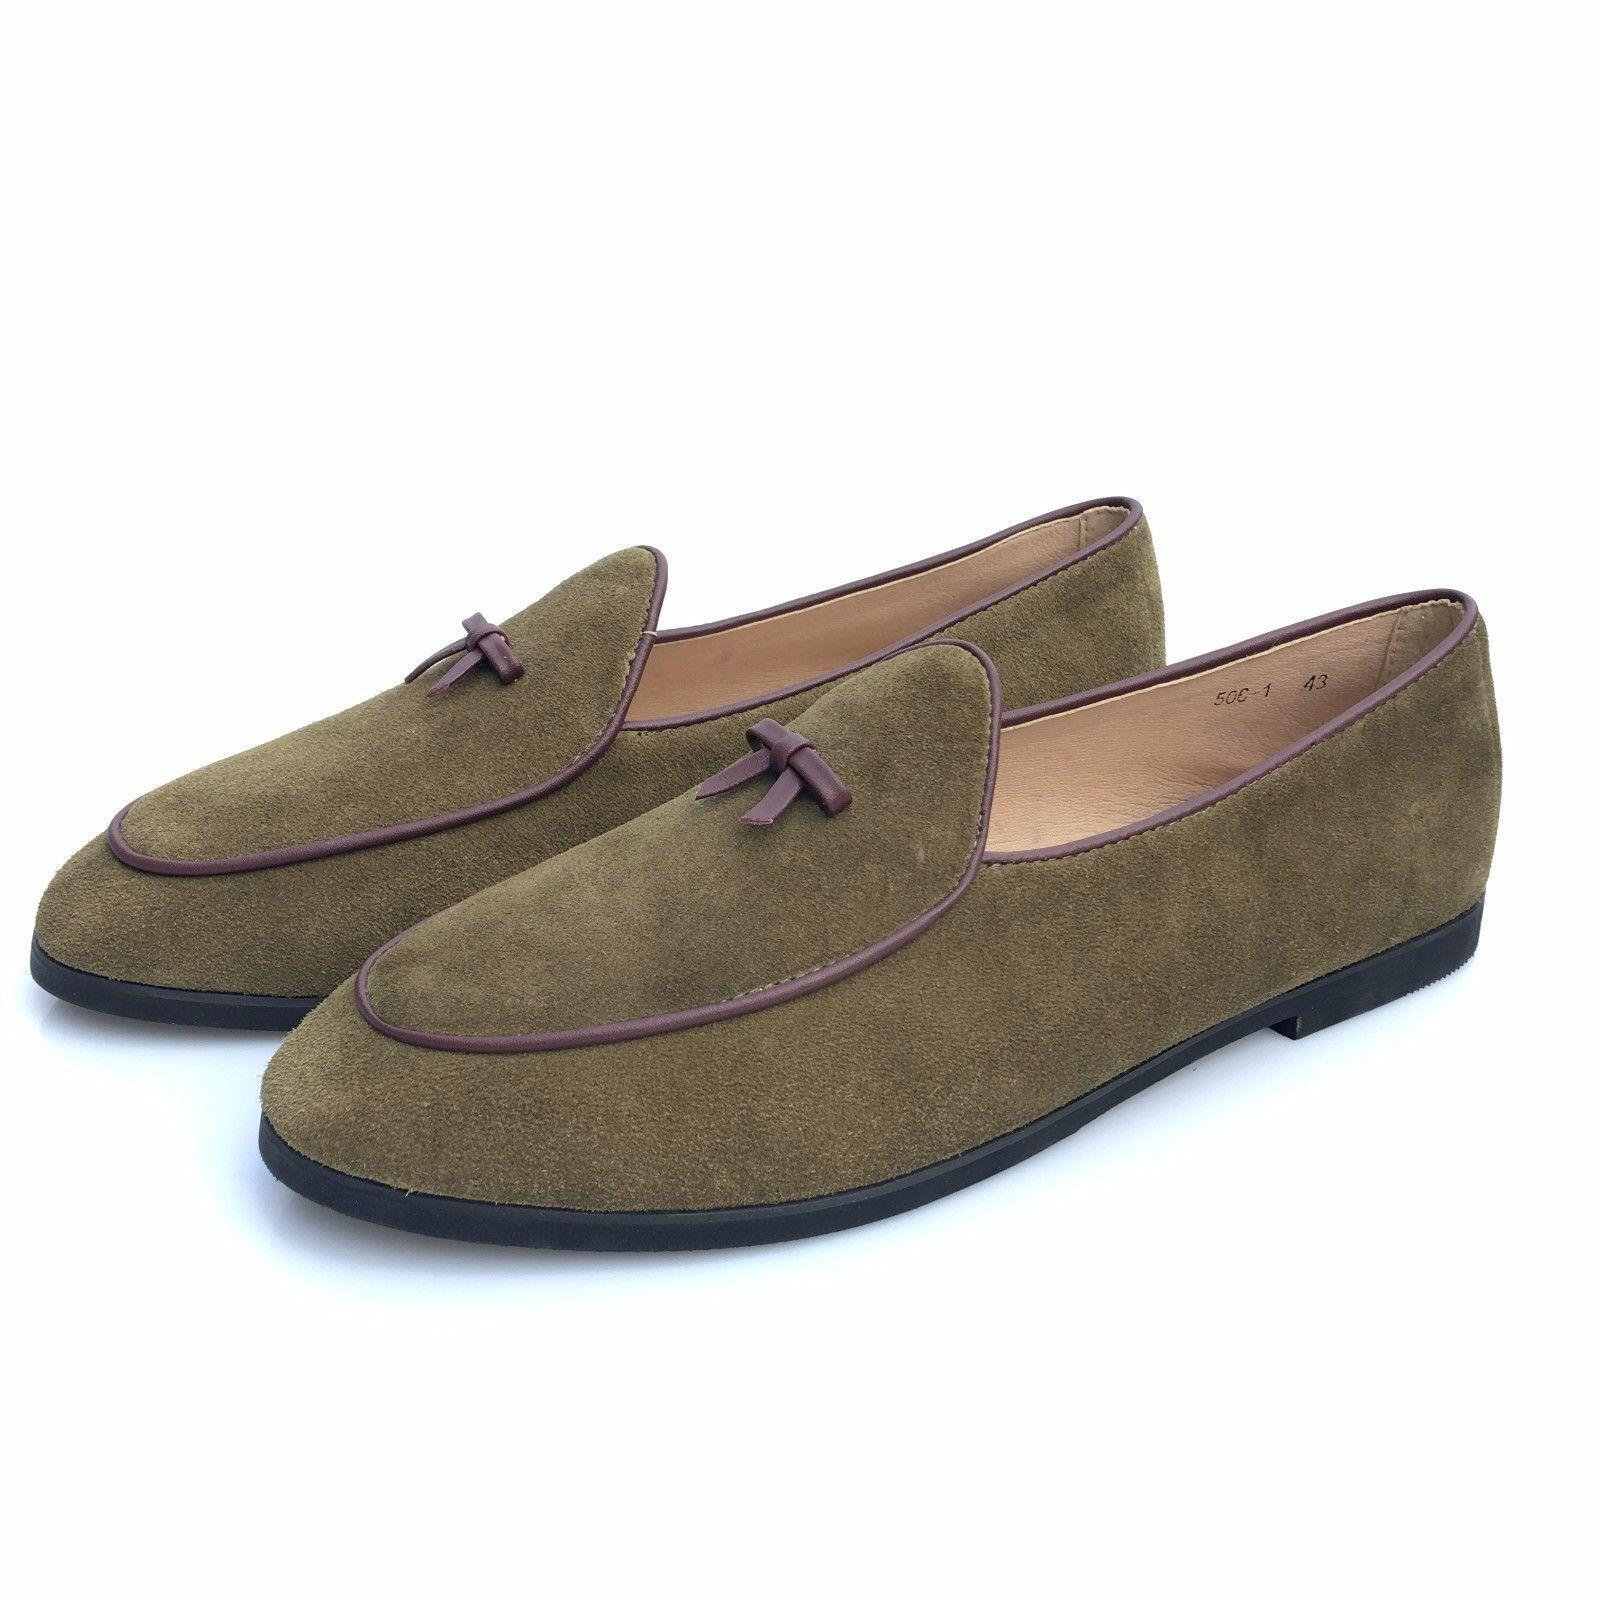 Comfort on Leather Loafers Belgian DressShoes Uomo Prom Shoes Slip on Comfort Flats Bowtie d46b4c